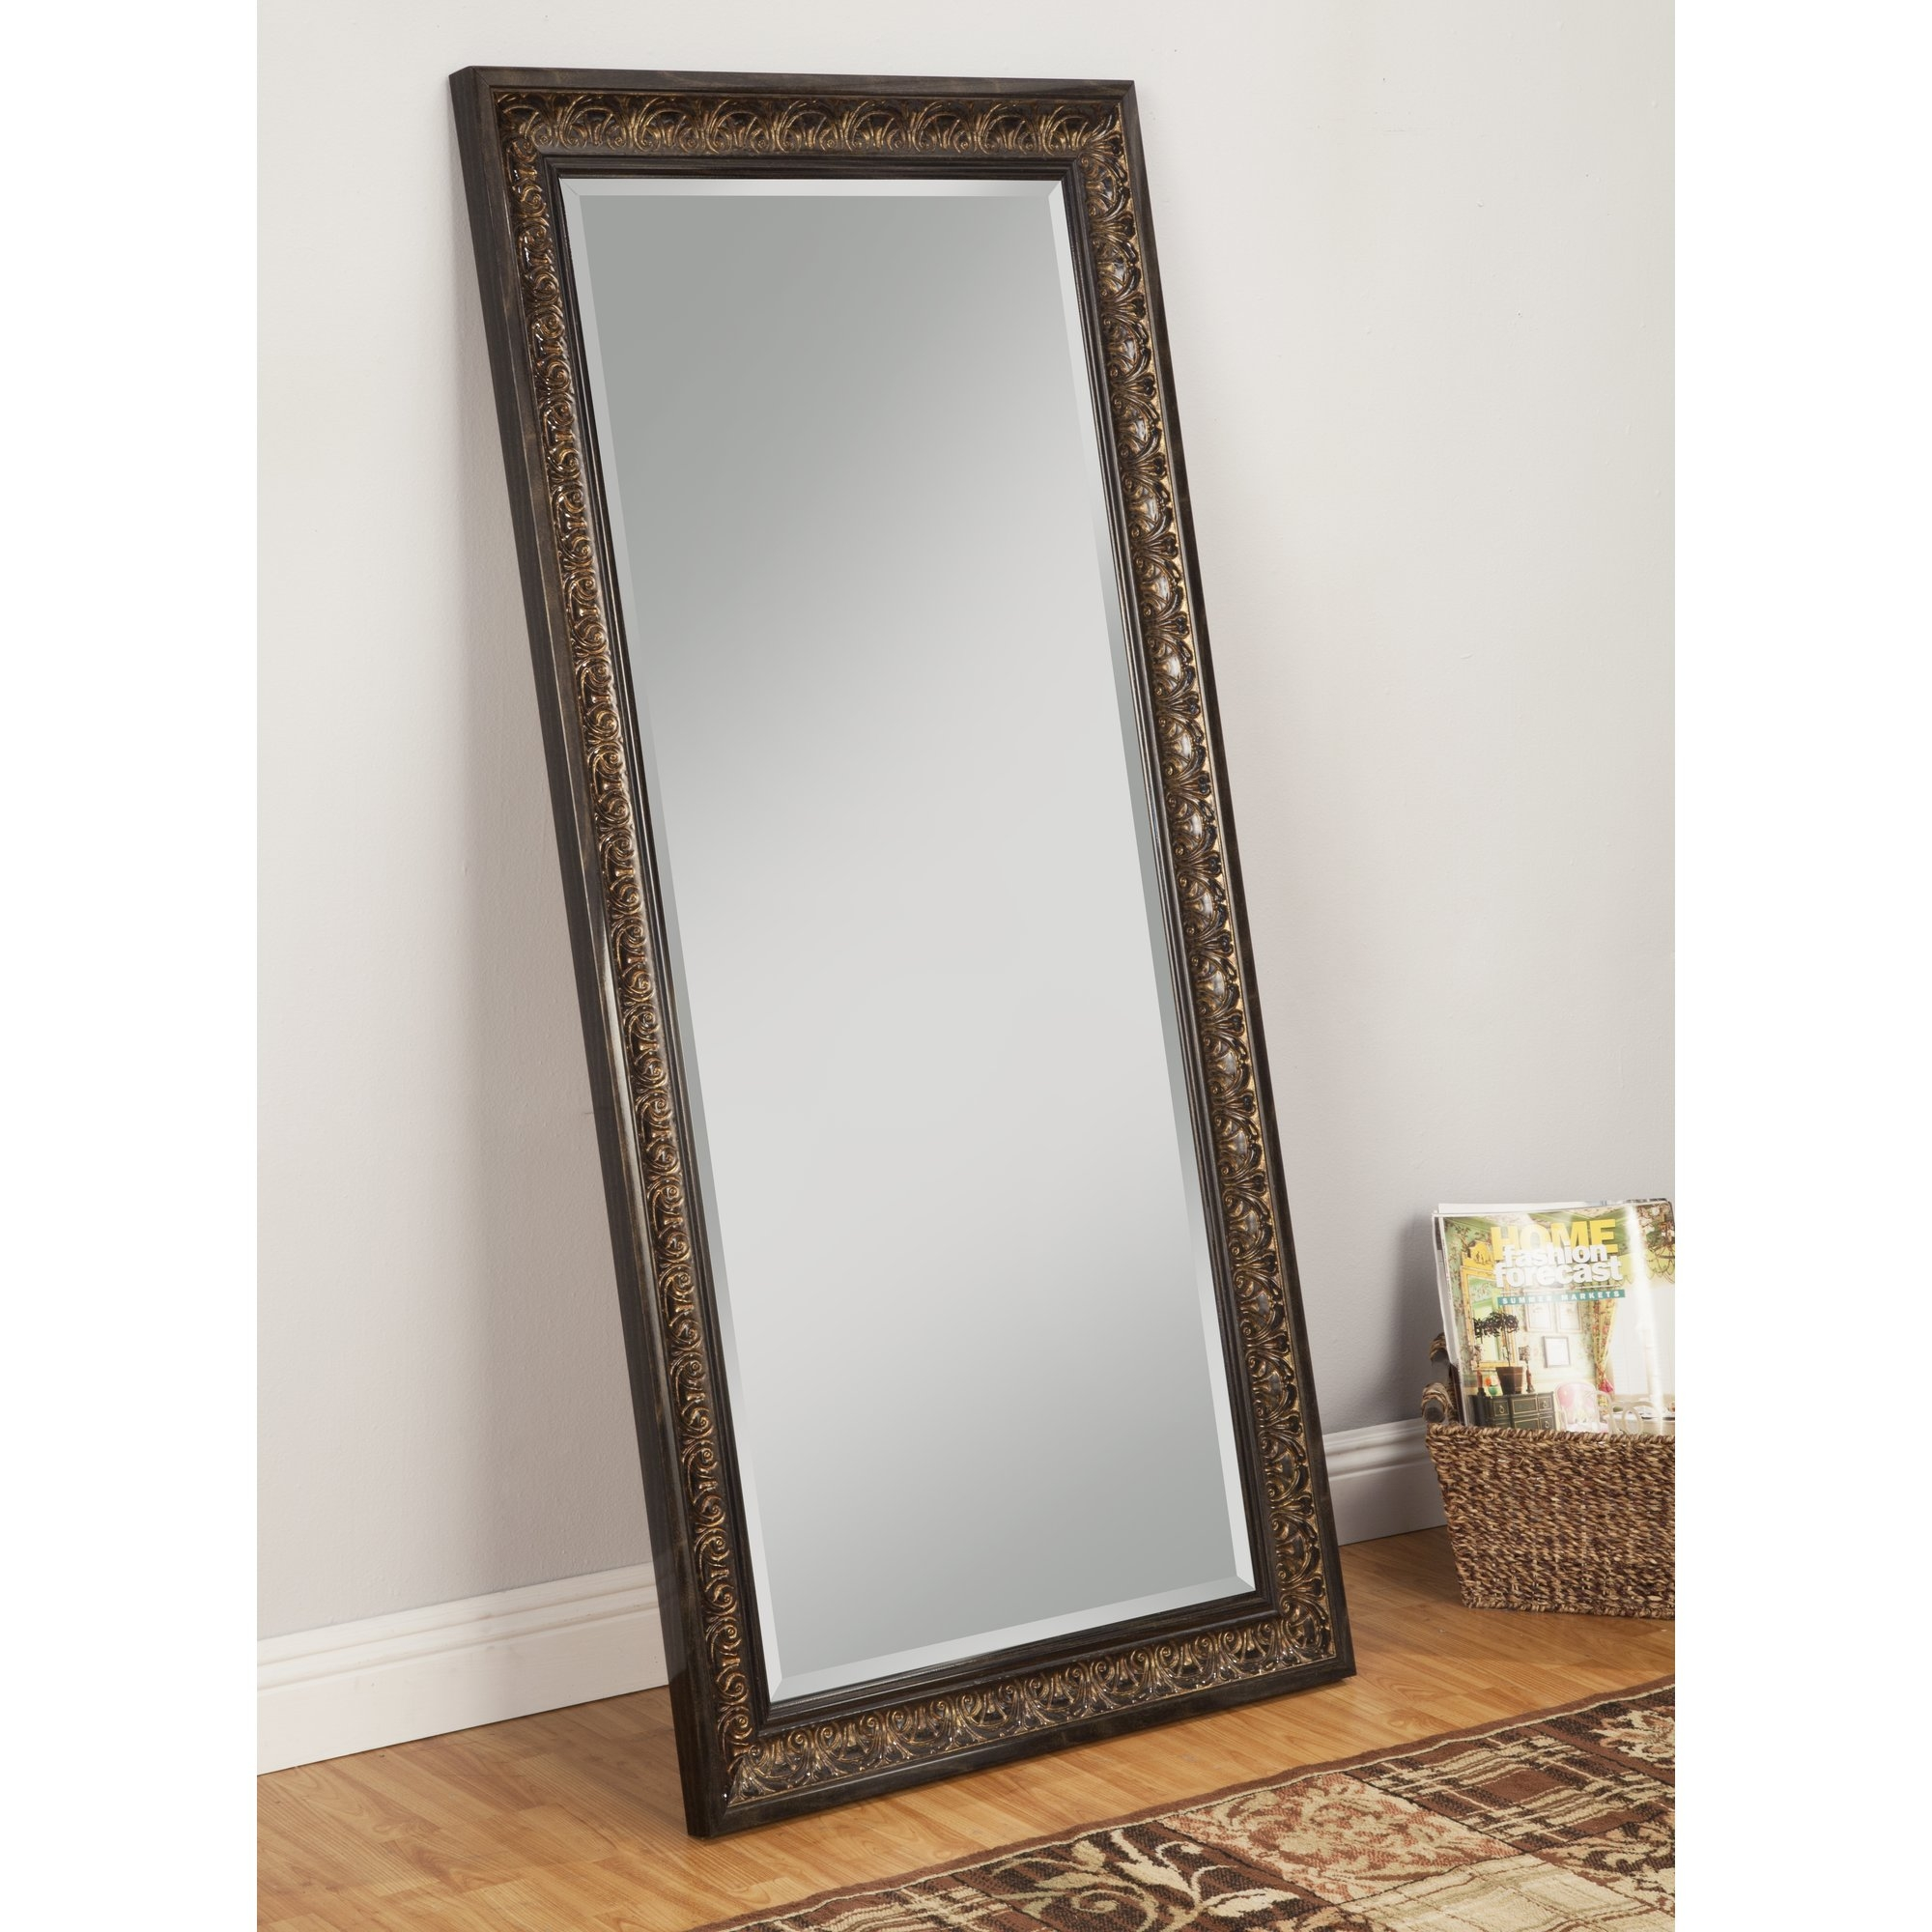 Floor Mirrors Youll Love Wayfair Intended For Long Length Mirror (Image 9 of 15)